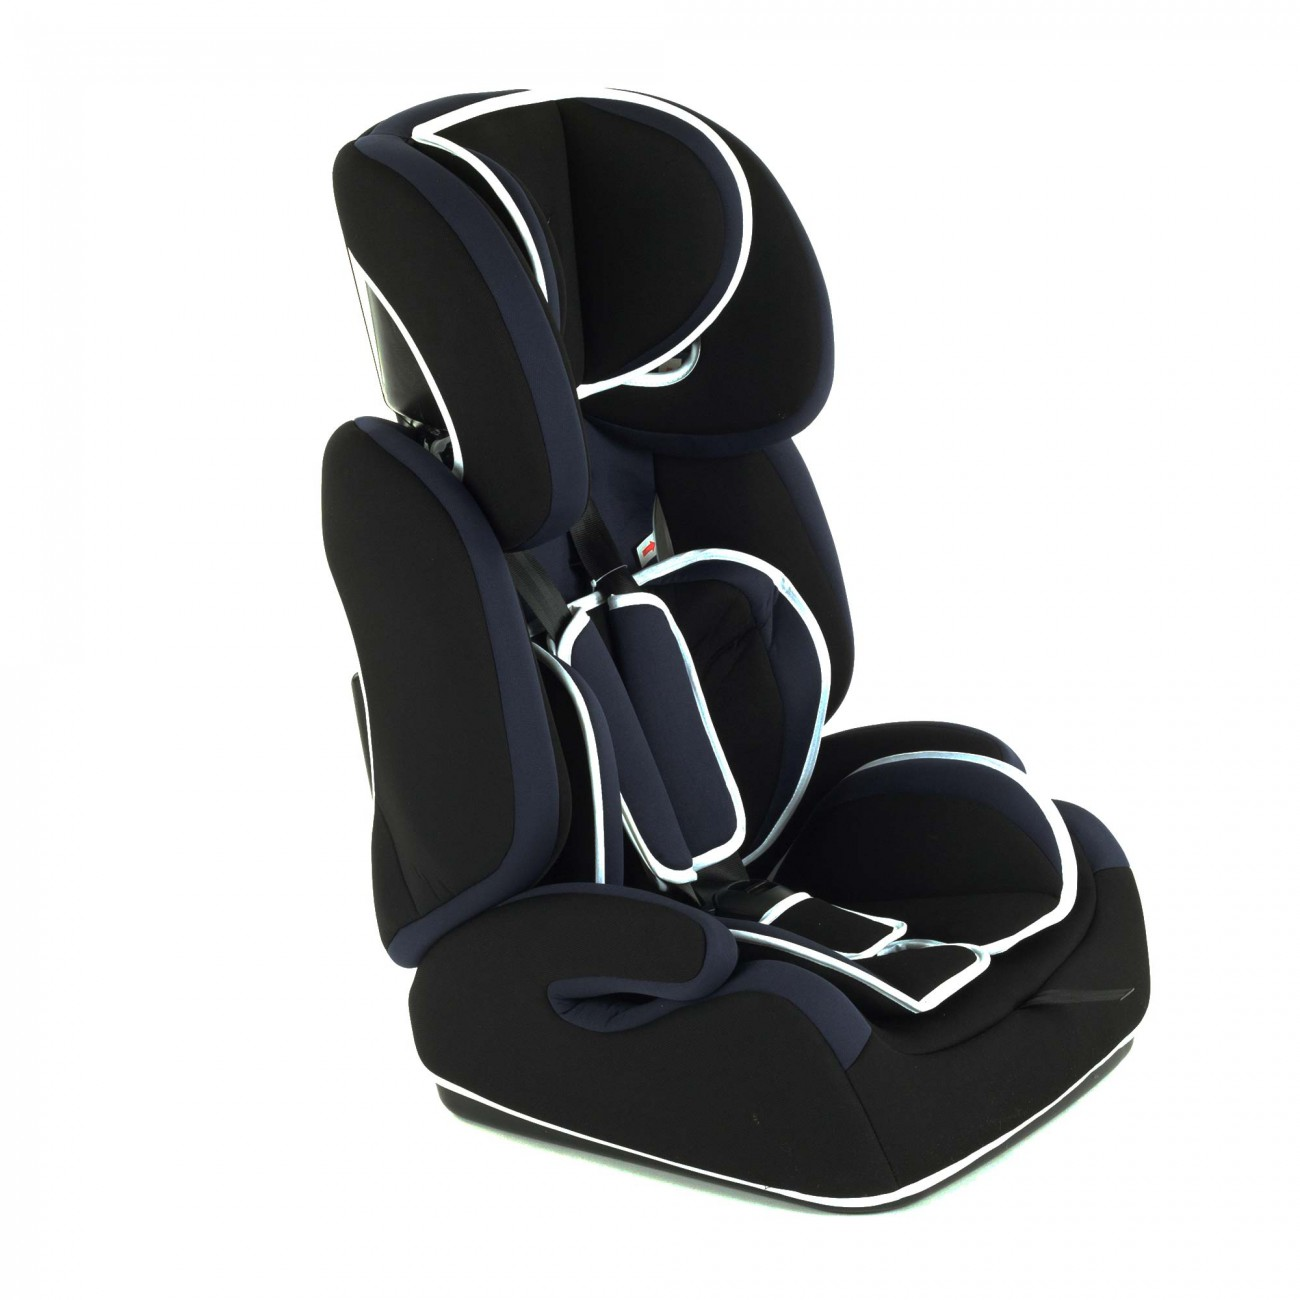 autokindersitz kinderautositz autositz kindersitz 9 36 kg f r gruppe 1 2 3 neu ebay. Black Bedroom Furniture Sets. Home Design Ideas